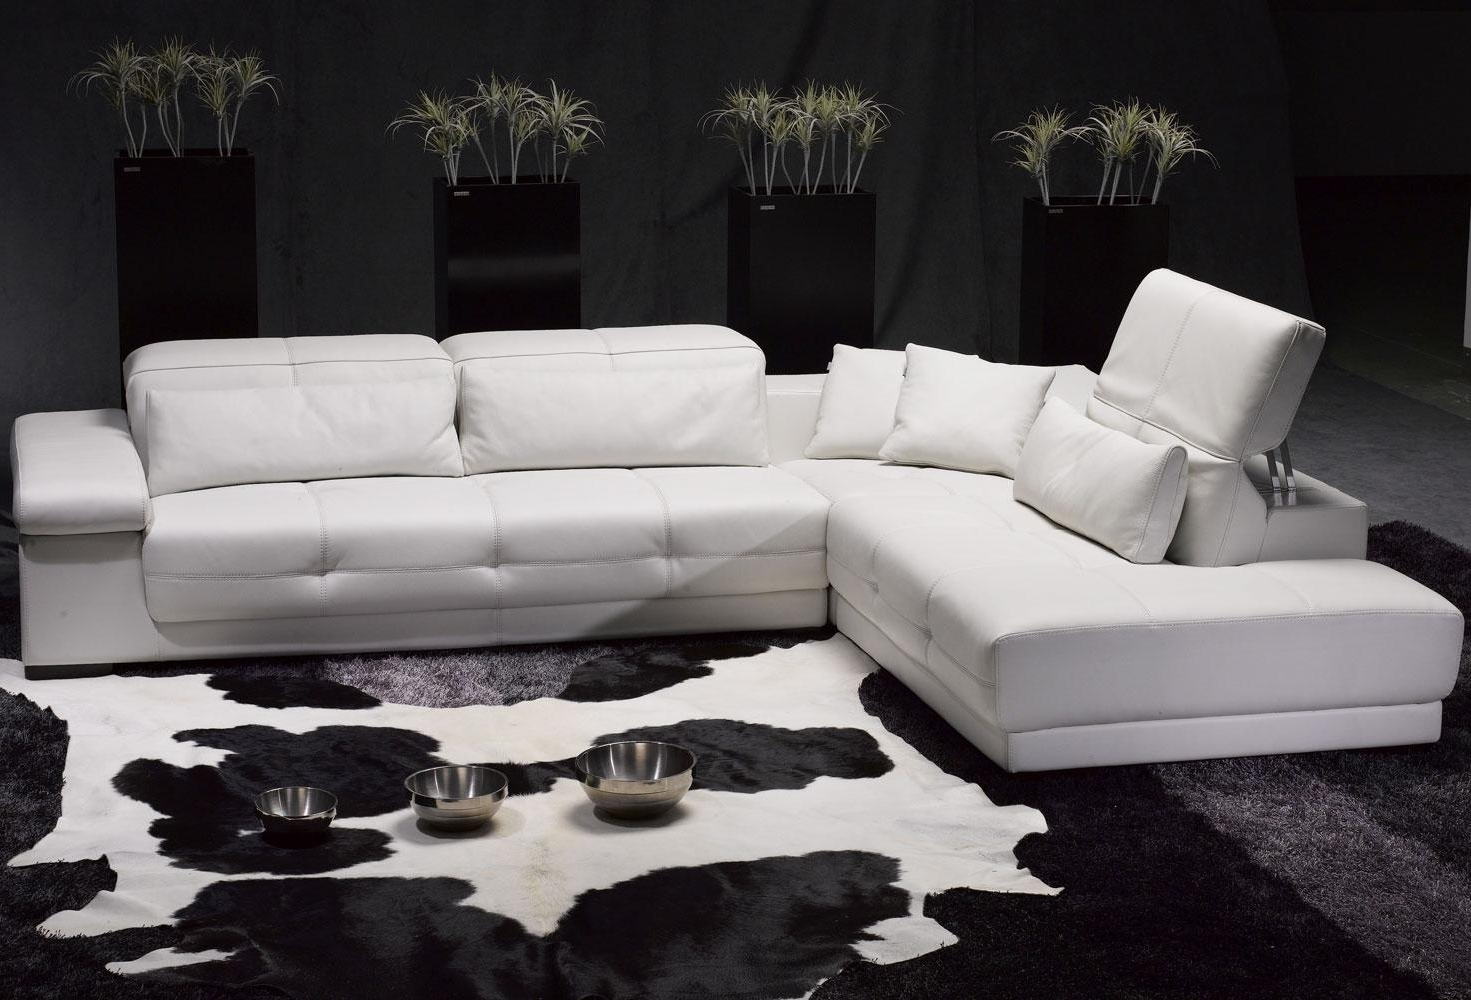 Jenisemay Throughout White Sectional Sofas (Gallery 3 of 20)